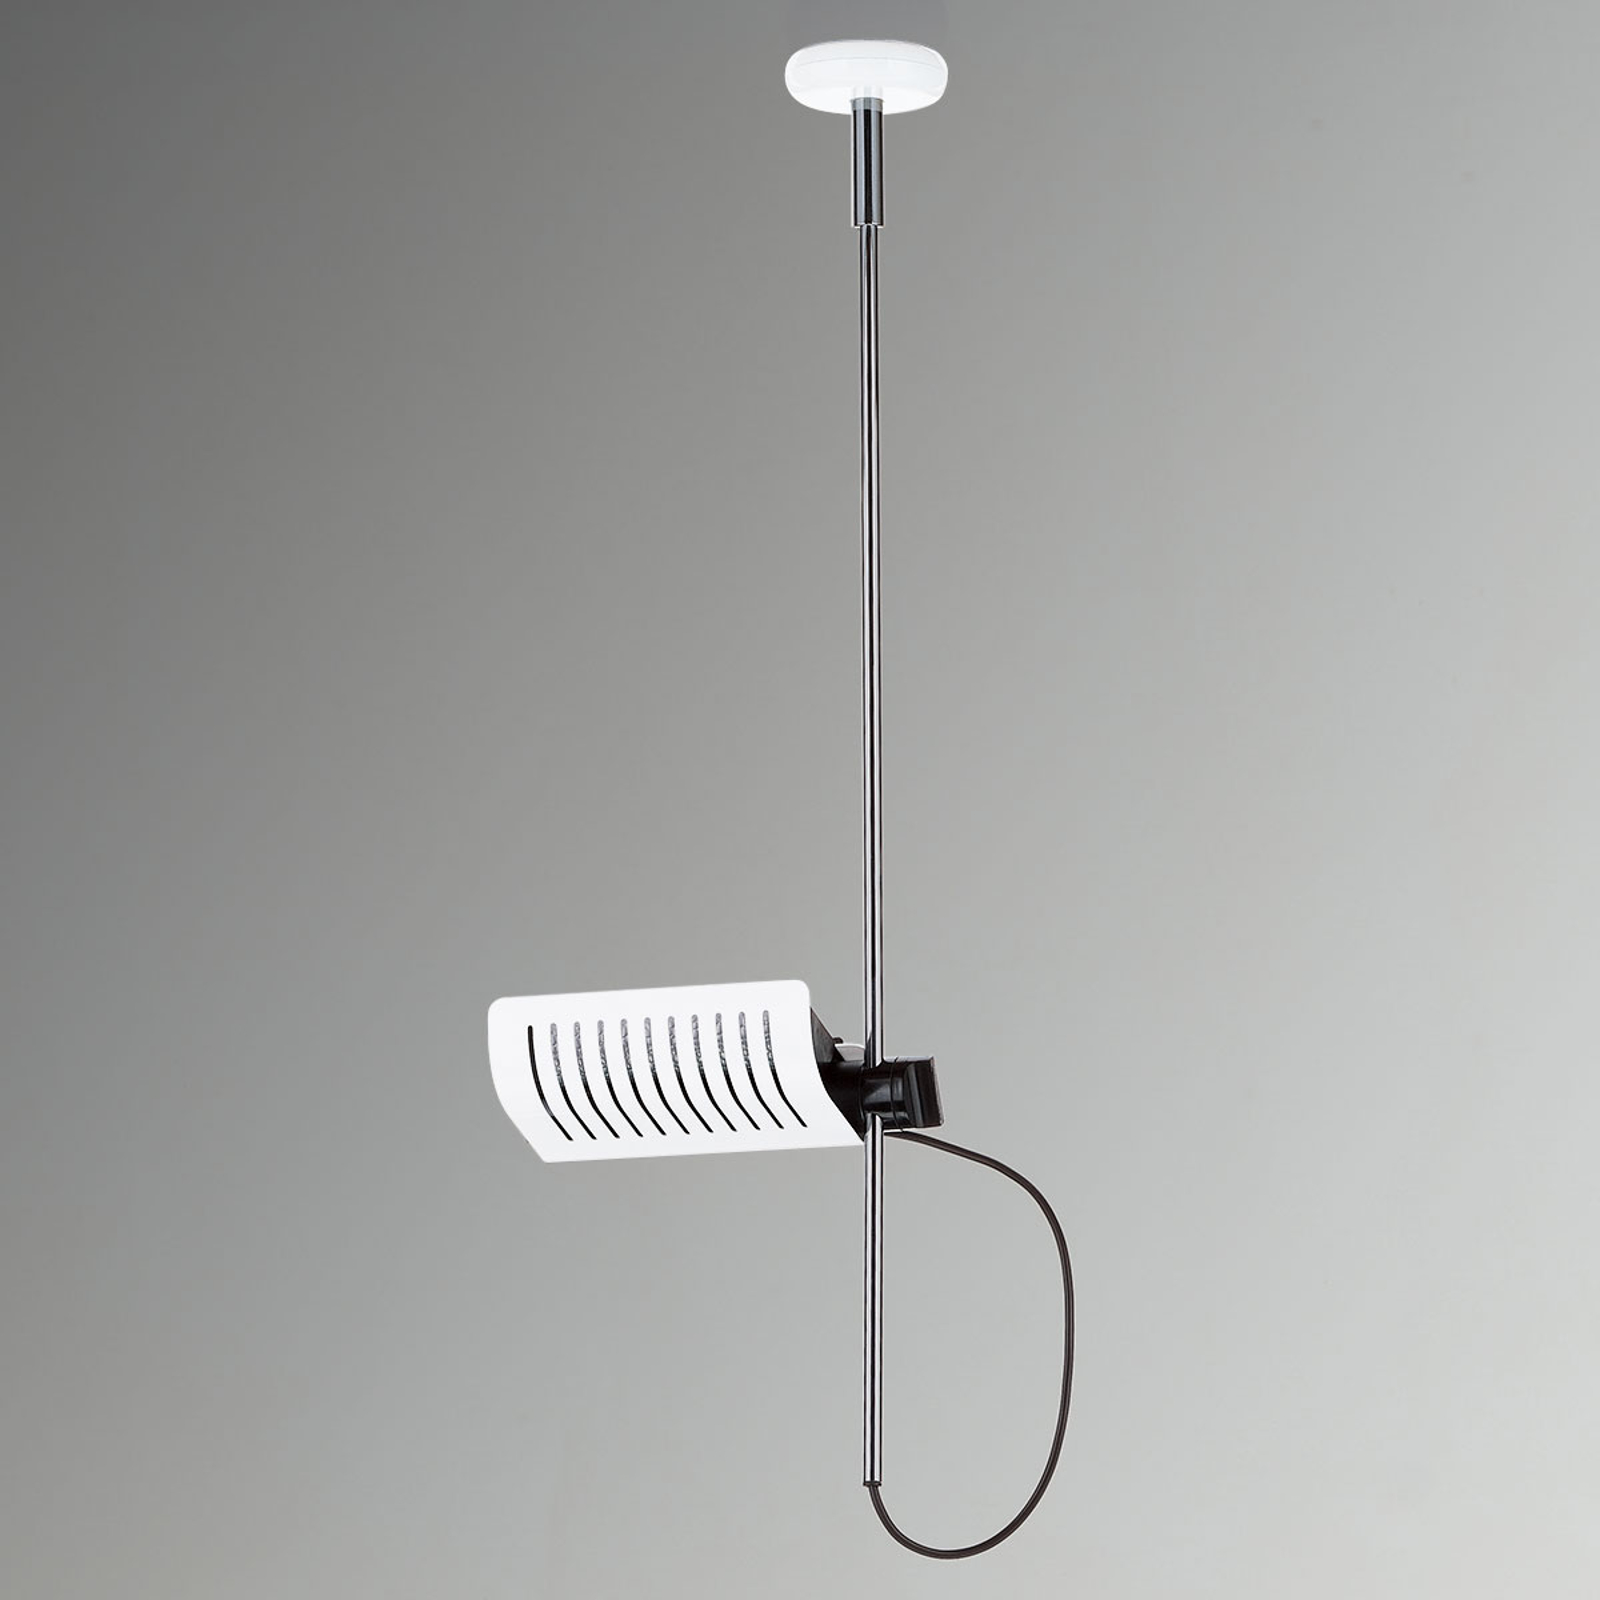 Oluce Colombo 885 - design-hanglamp wit